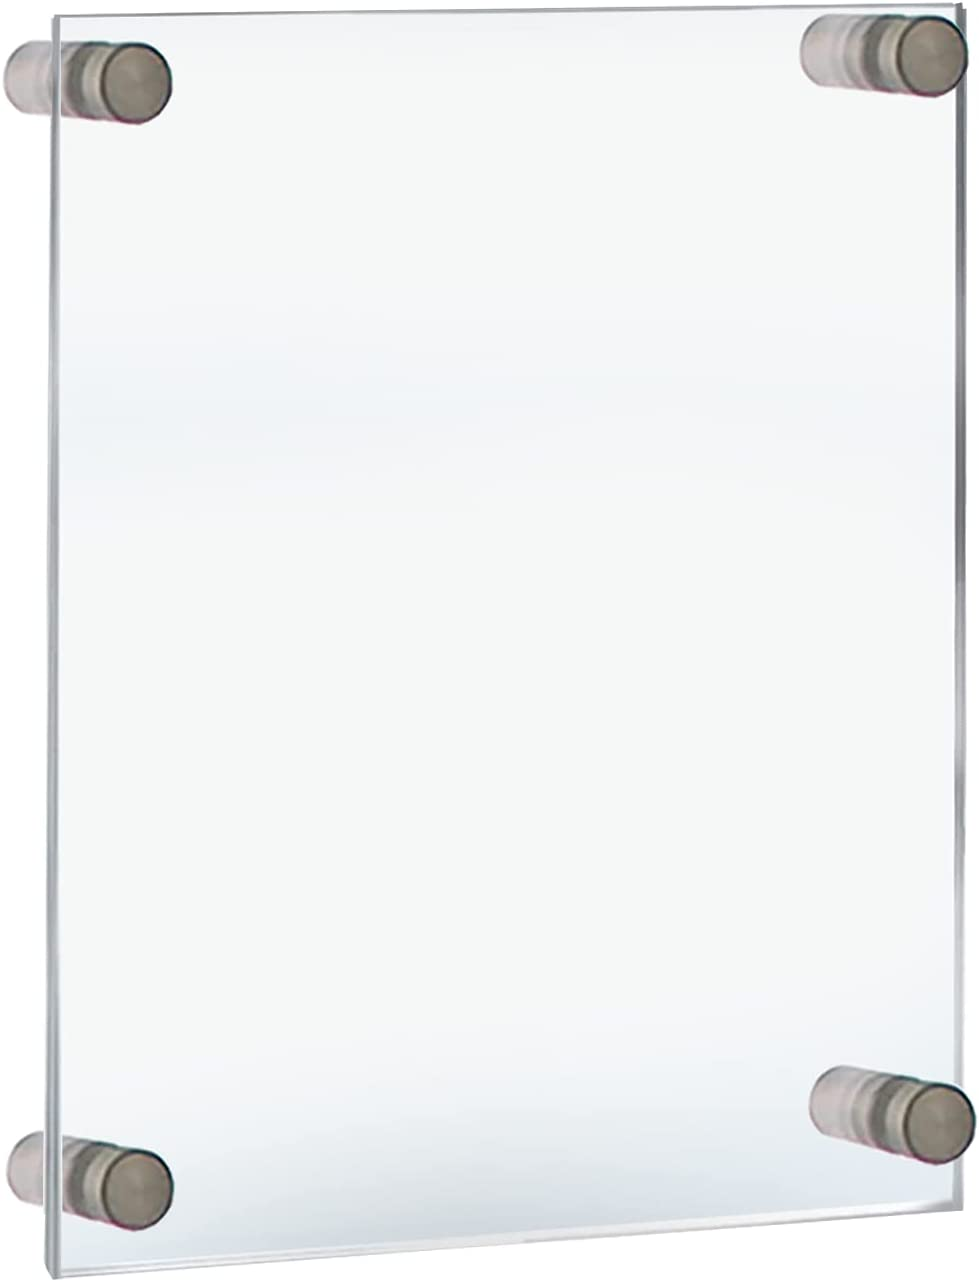 Azar Displays 105508 Floating Acrylic Wall Frame with Silver Stand Off Caps:11